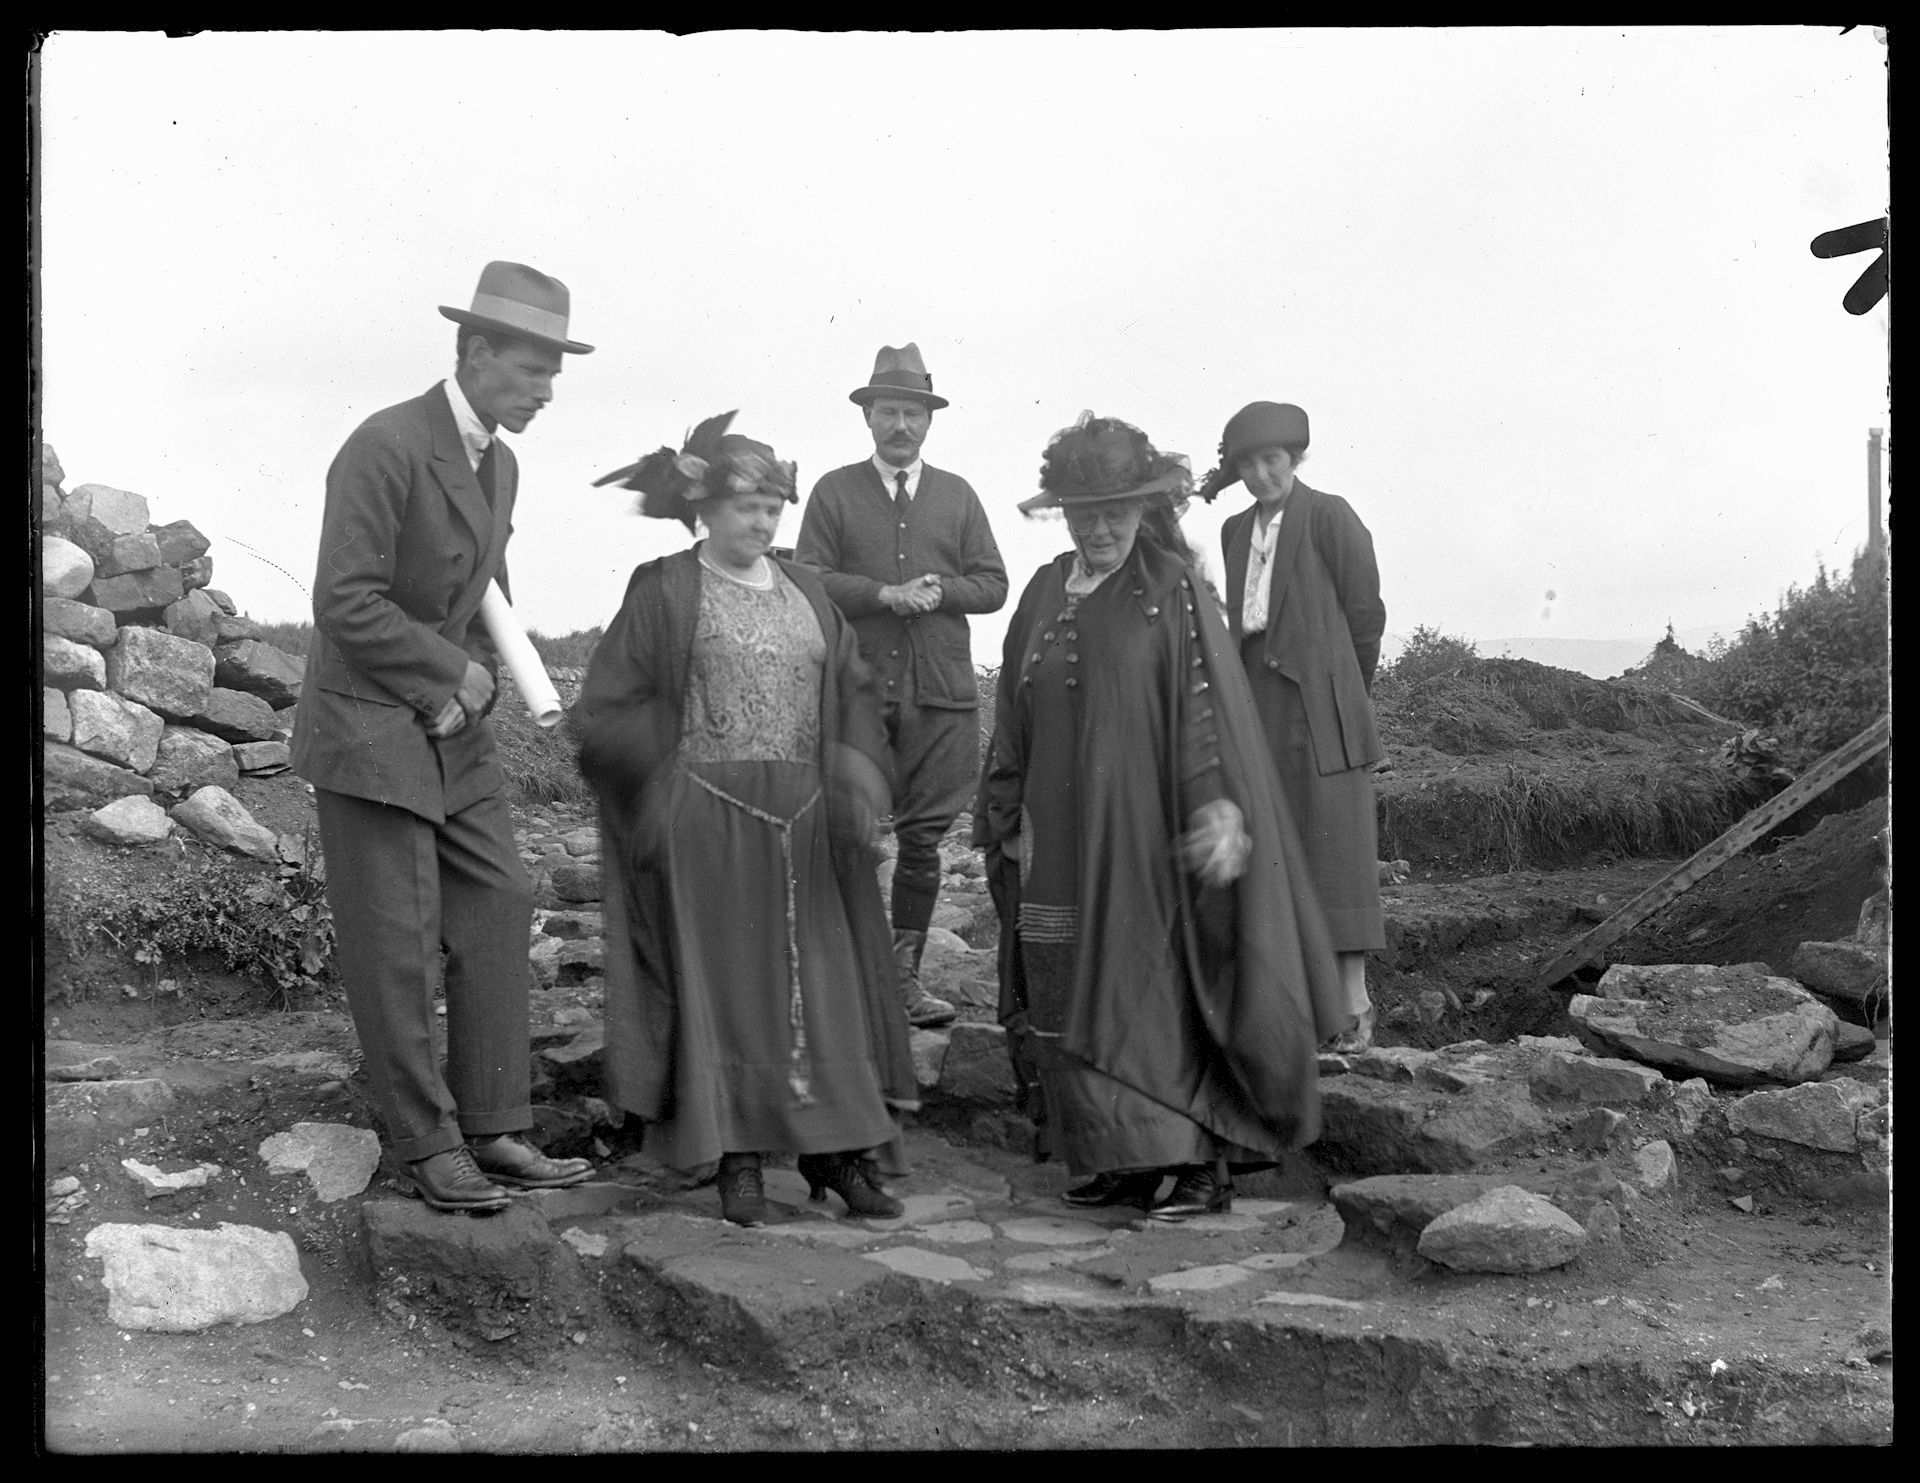 Black and white photograph of group of people visiting excavations